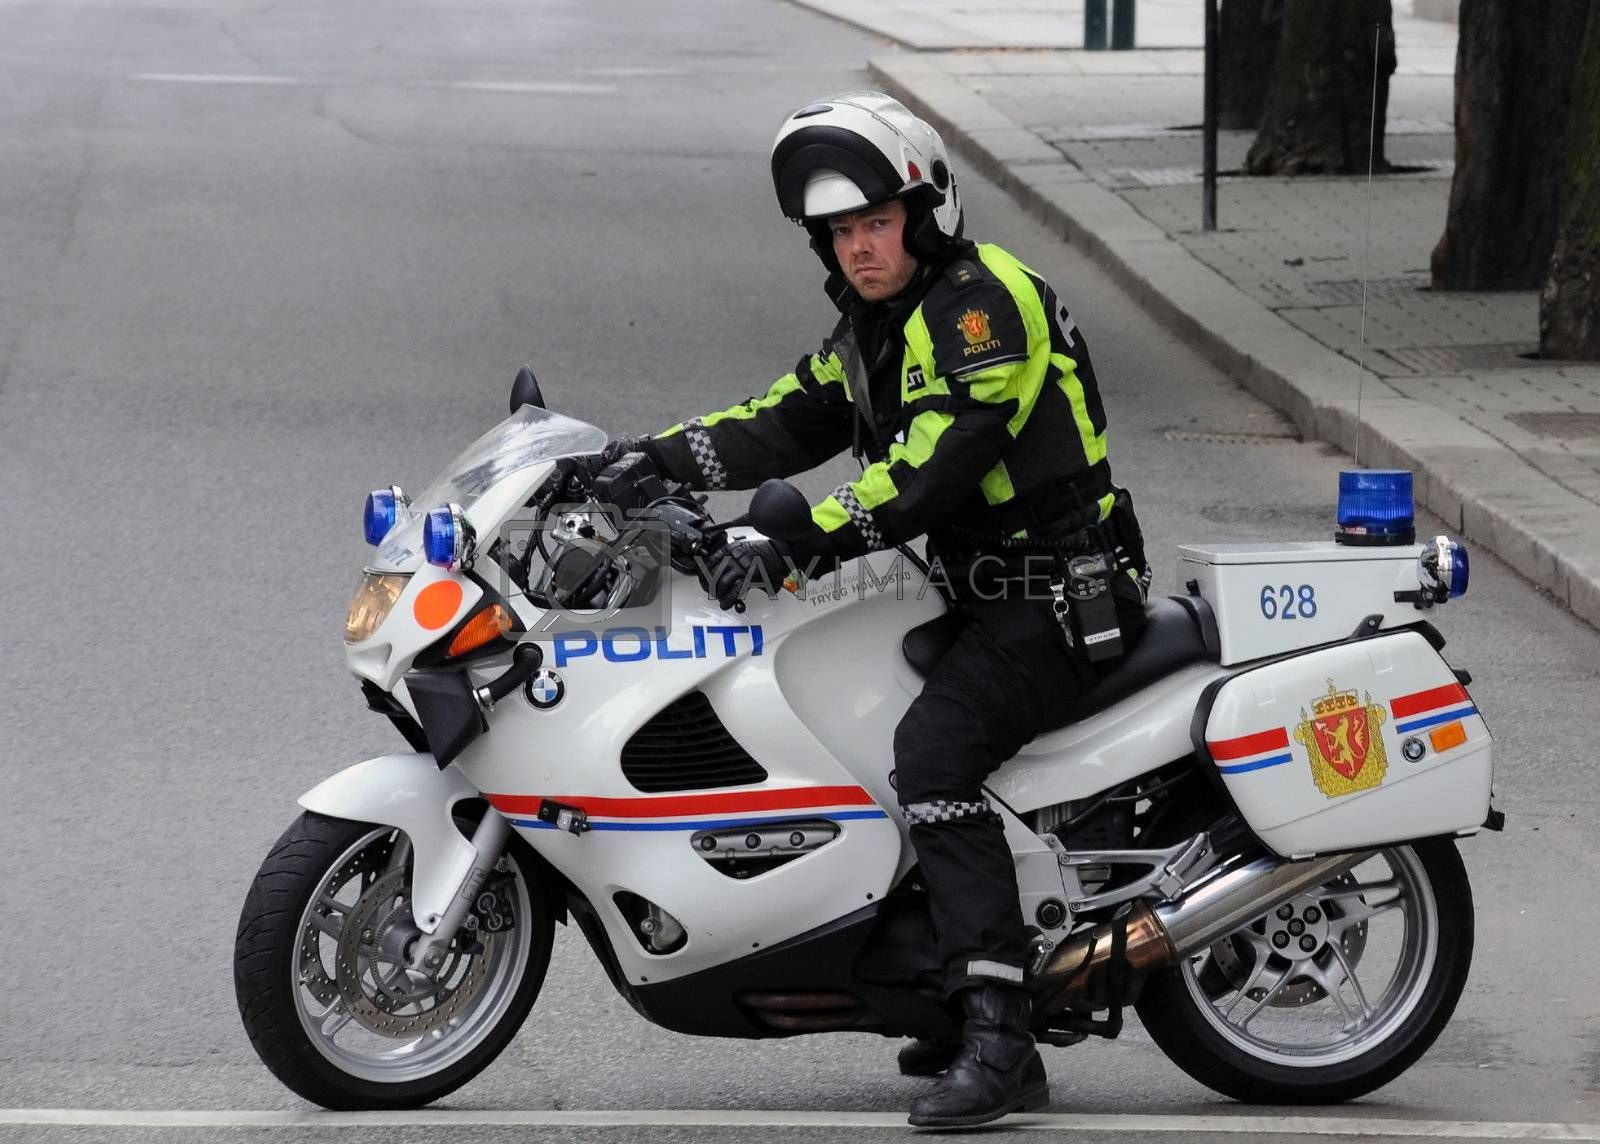 Policeofficer on motorbike in Oslo Norway